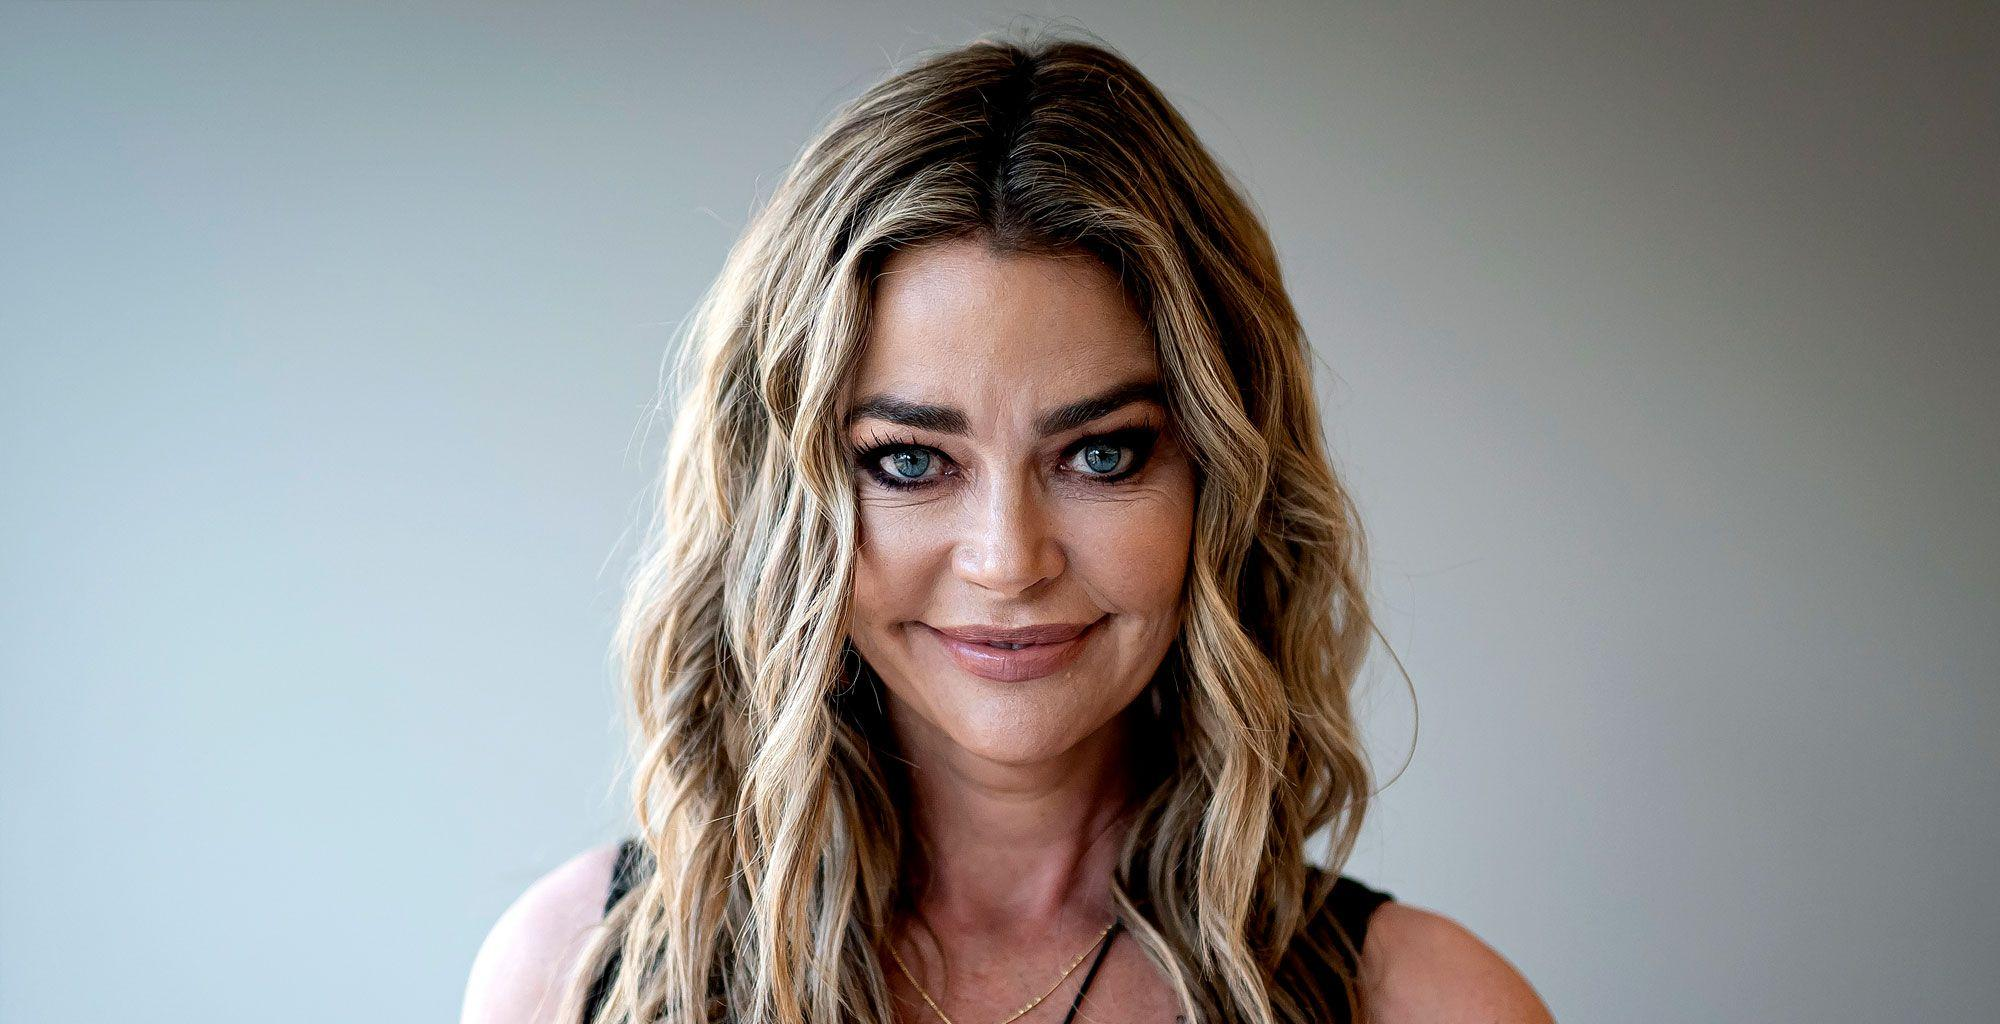 Denise Richards Teases That A 20 Years Long Friendship Will 'Change' In Season 10 Of 'RHOBH' Amid Explosive Drama And 'Tears!'